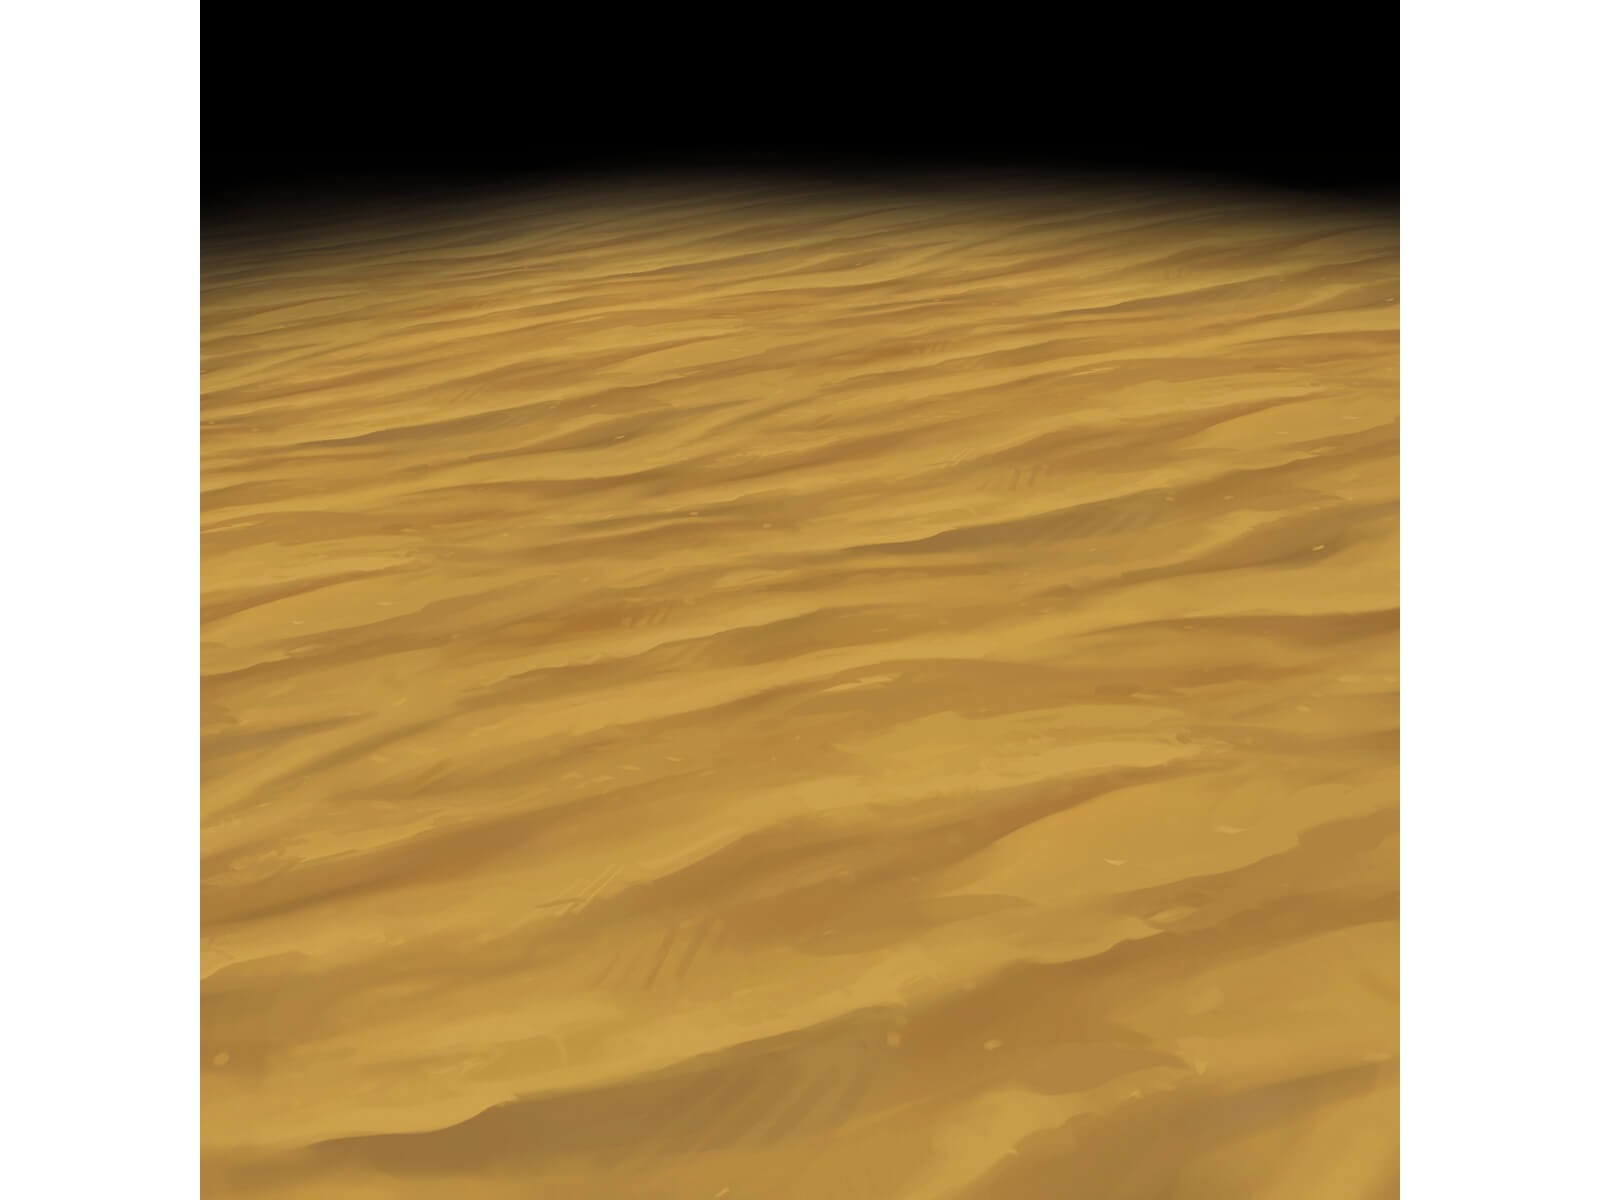 Sand texture 1 (hand painted)